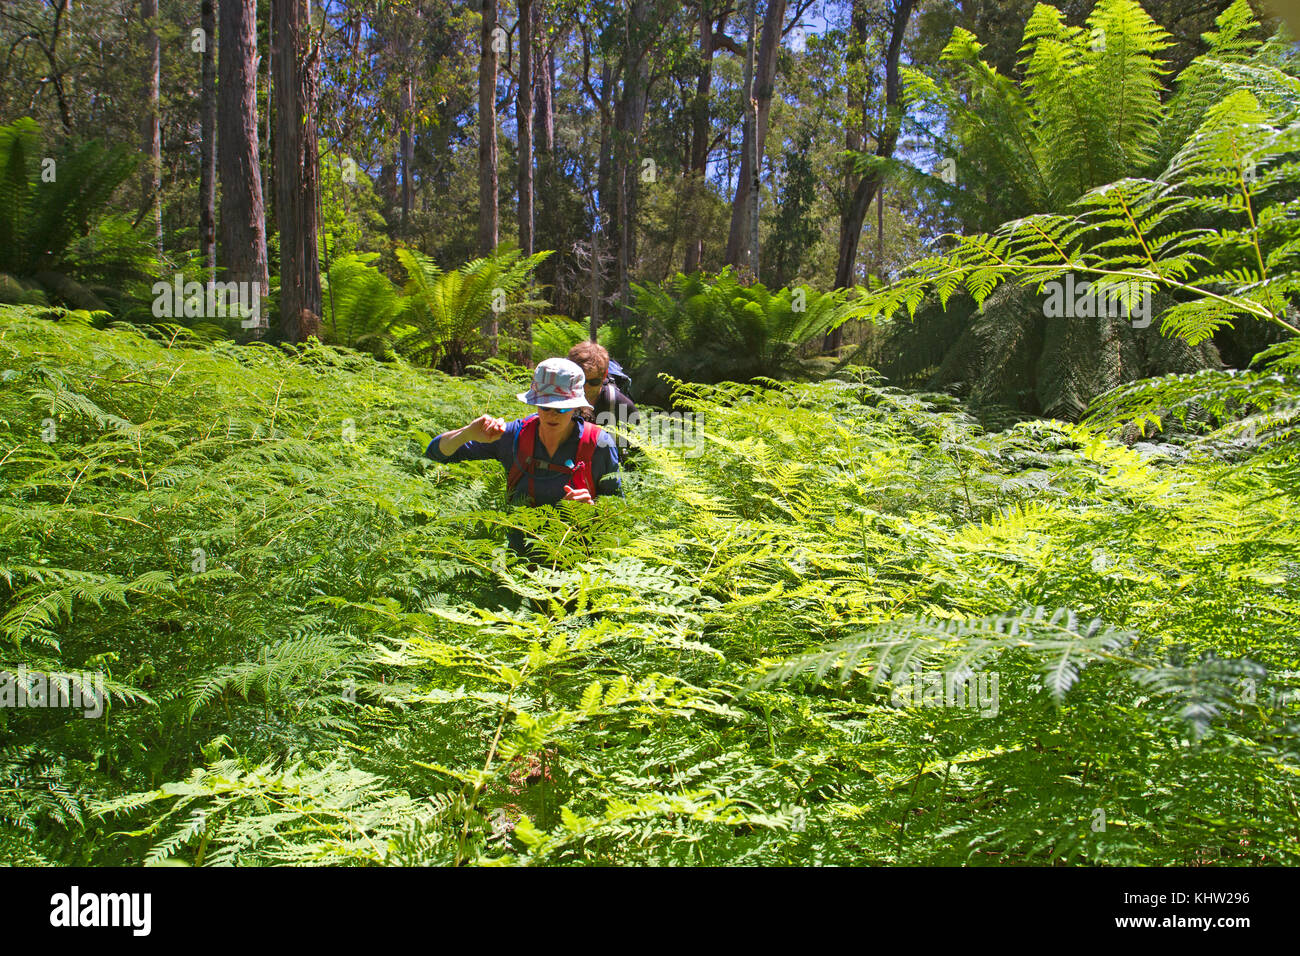 Hikers passing through batwing ferns in the Florentine Valley - Stock Image